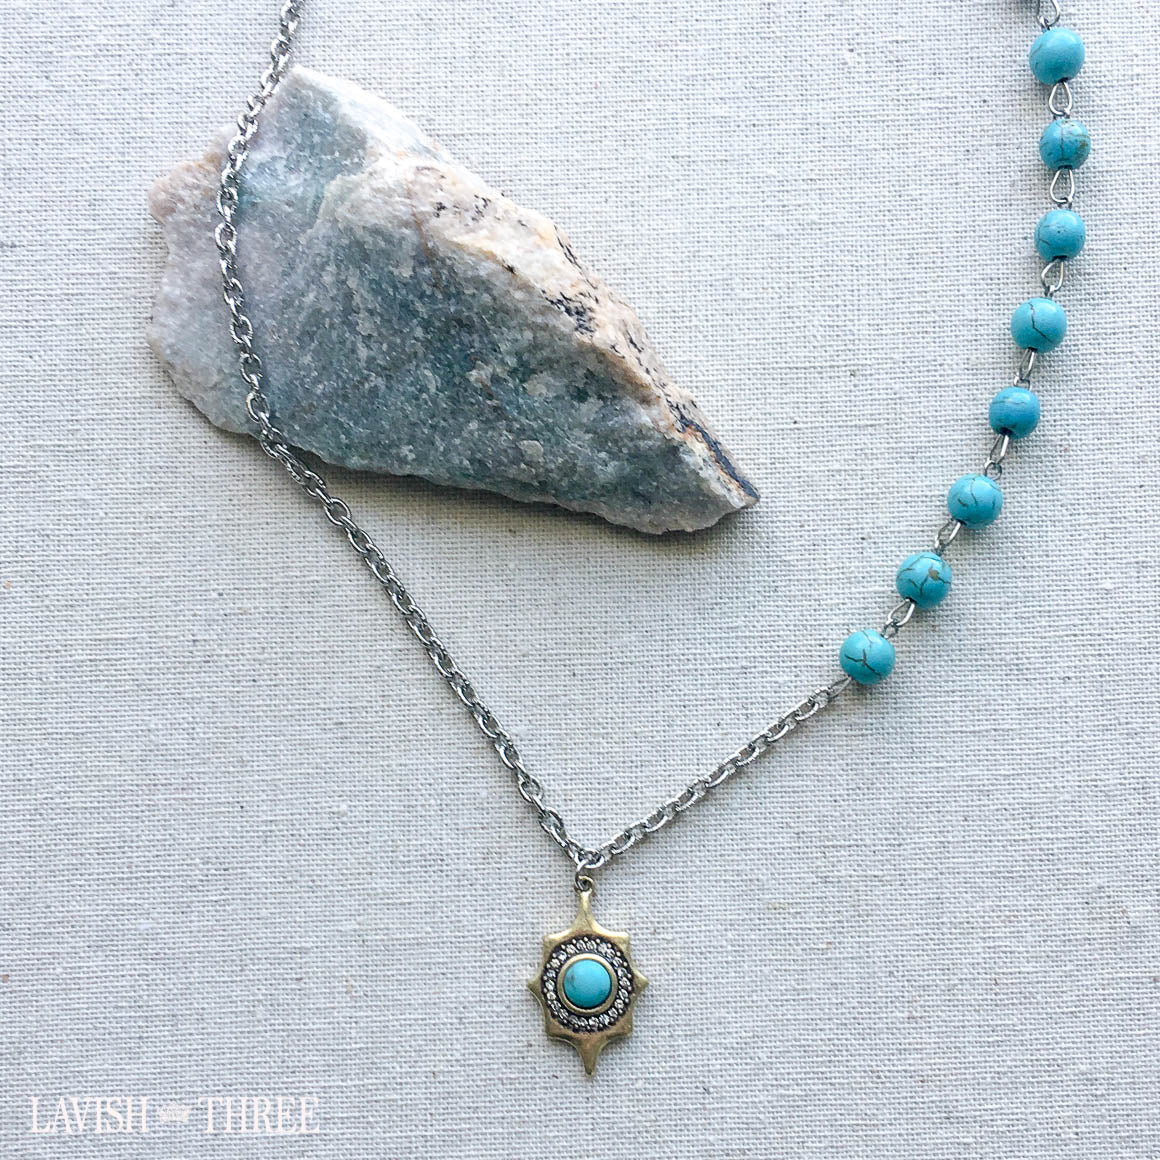 Turquoise and silver chain with gold crystal pendant necklace one of a kind jewelry lavish three 3